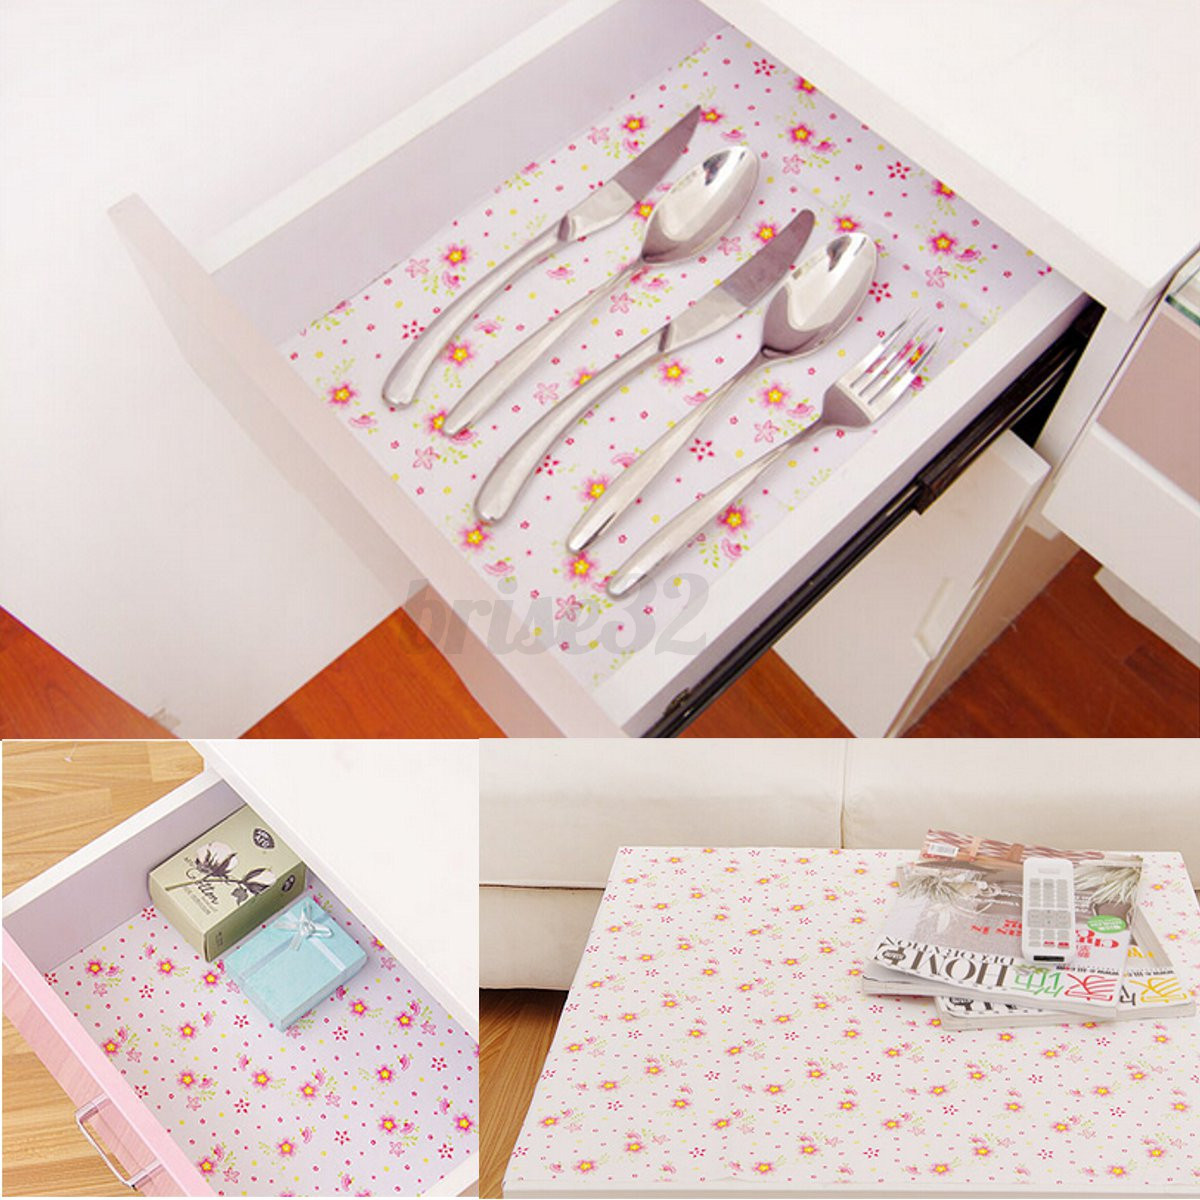 Kitchen Shelf Liner Paper: New Self Adhesive Contact Paper Shelf Drawer Liner Wall